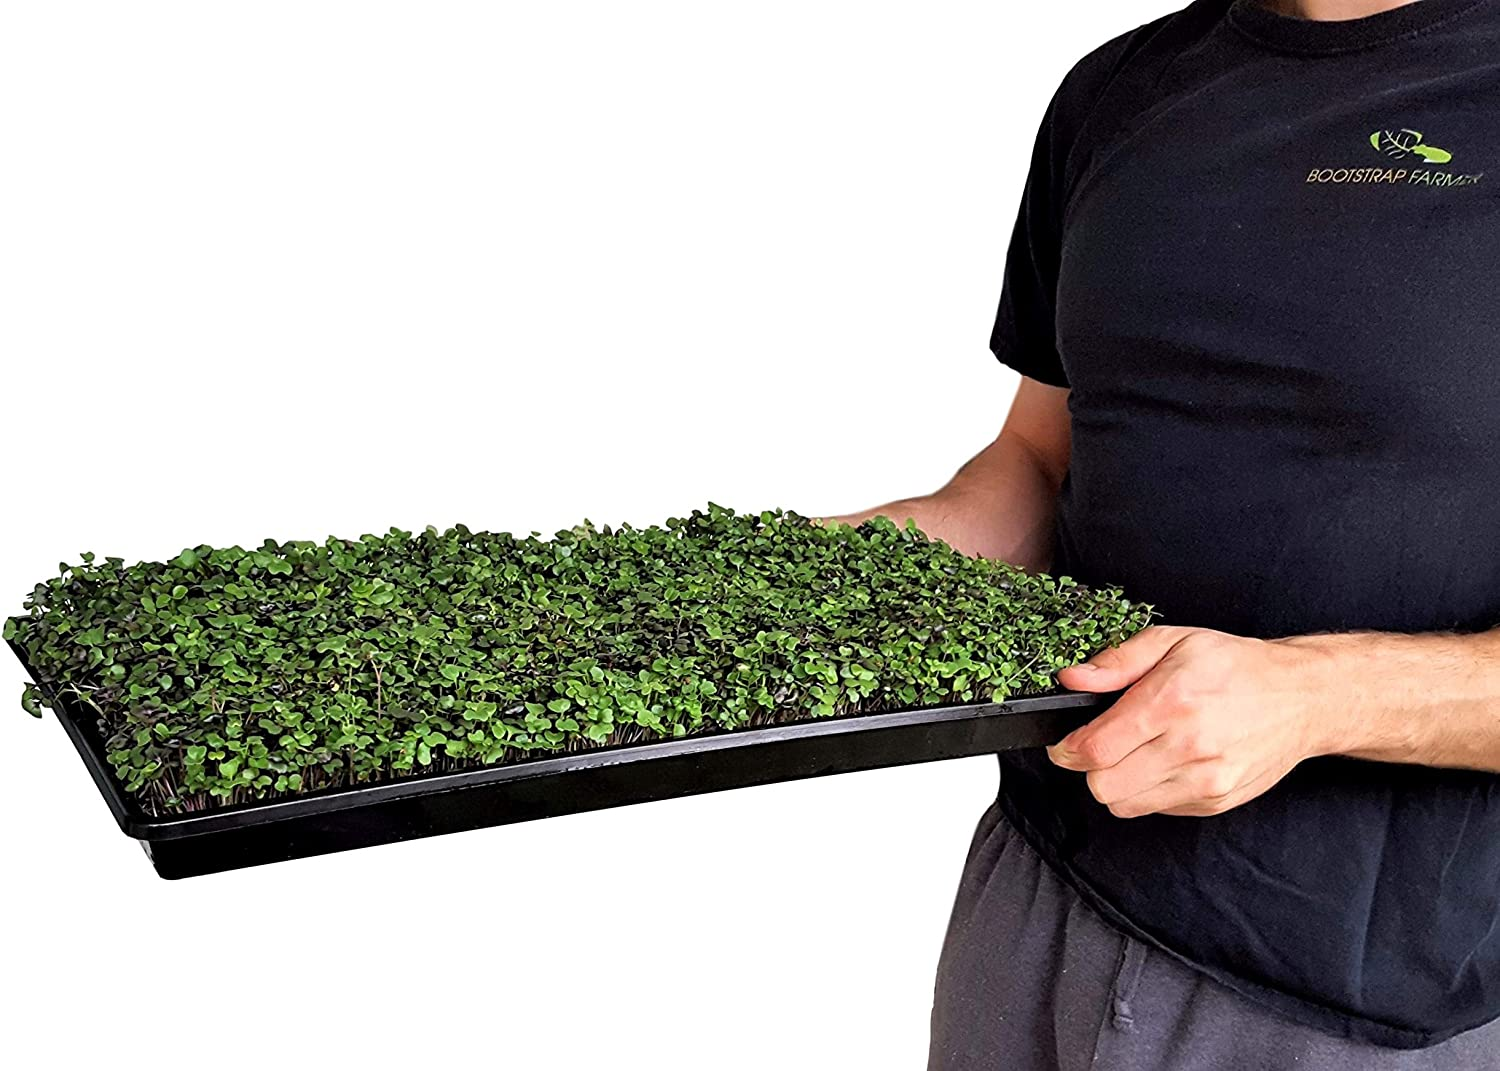 Microgreen Trays No Holes, 60 Pack, Extra Strength Black Shallow 1020 Tray Grow Microgreens Wheatgrass Fodder Sprouting Plants